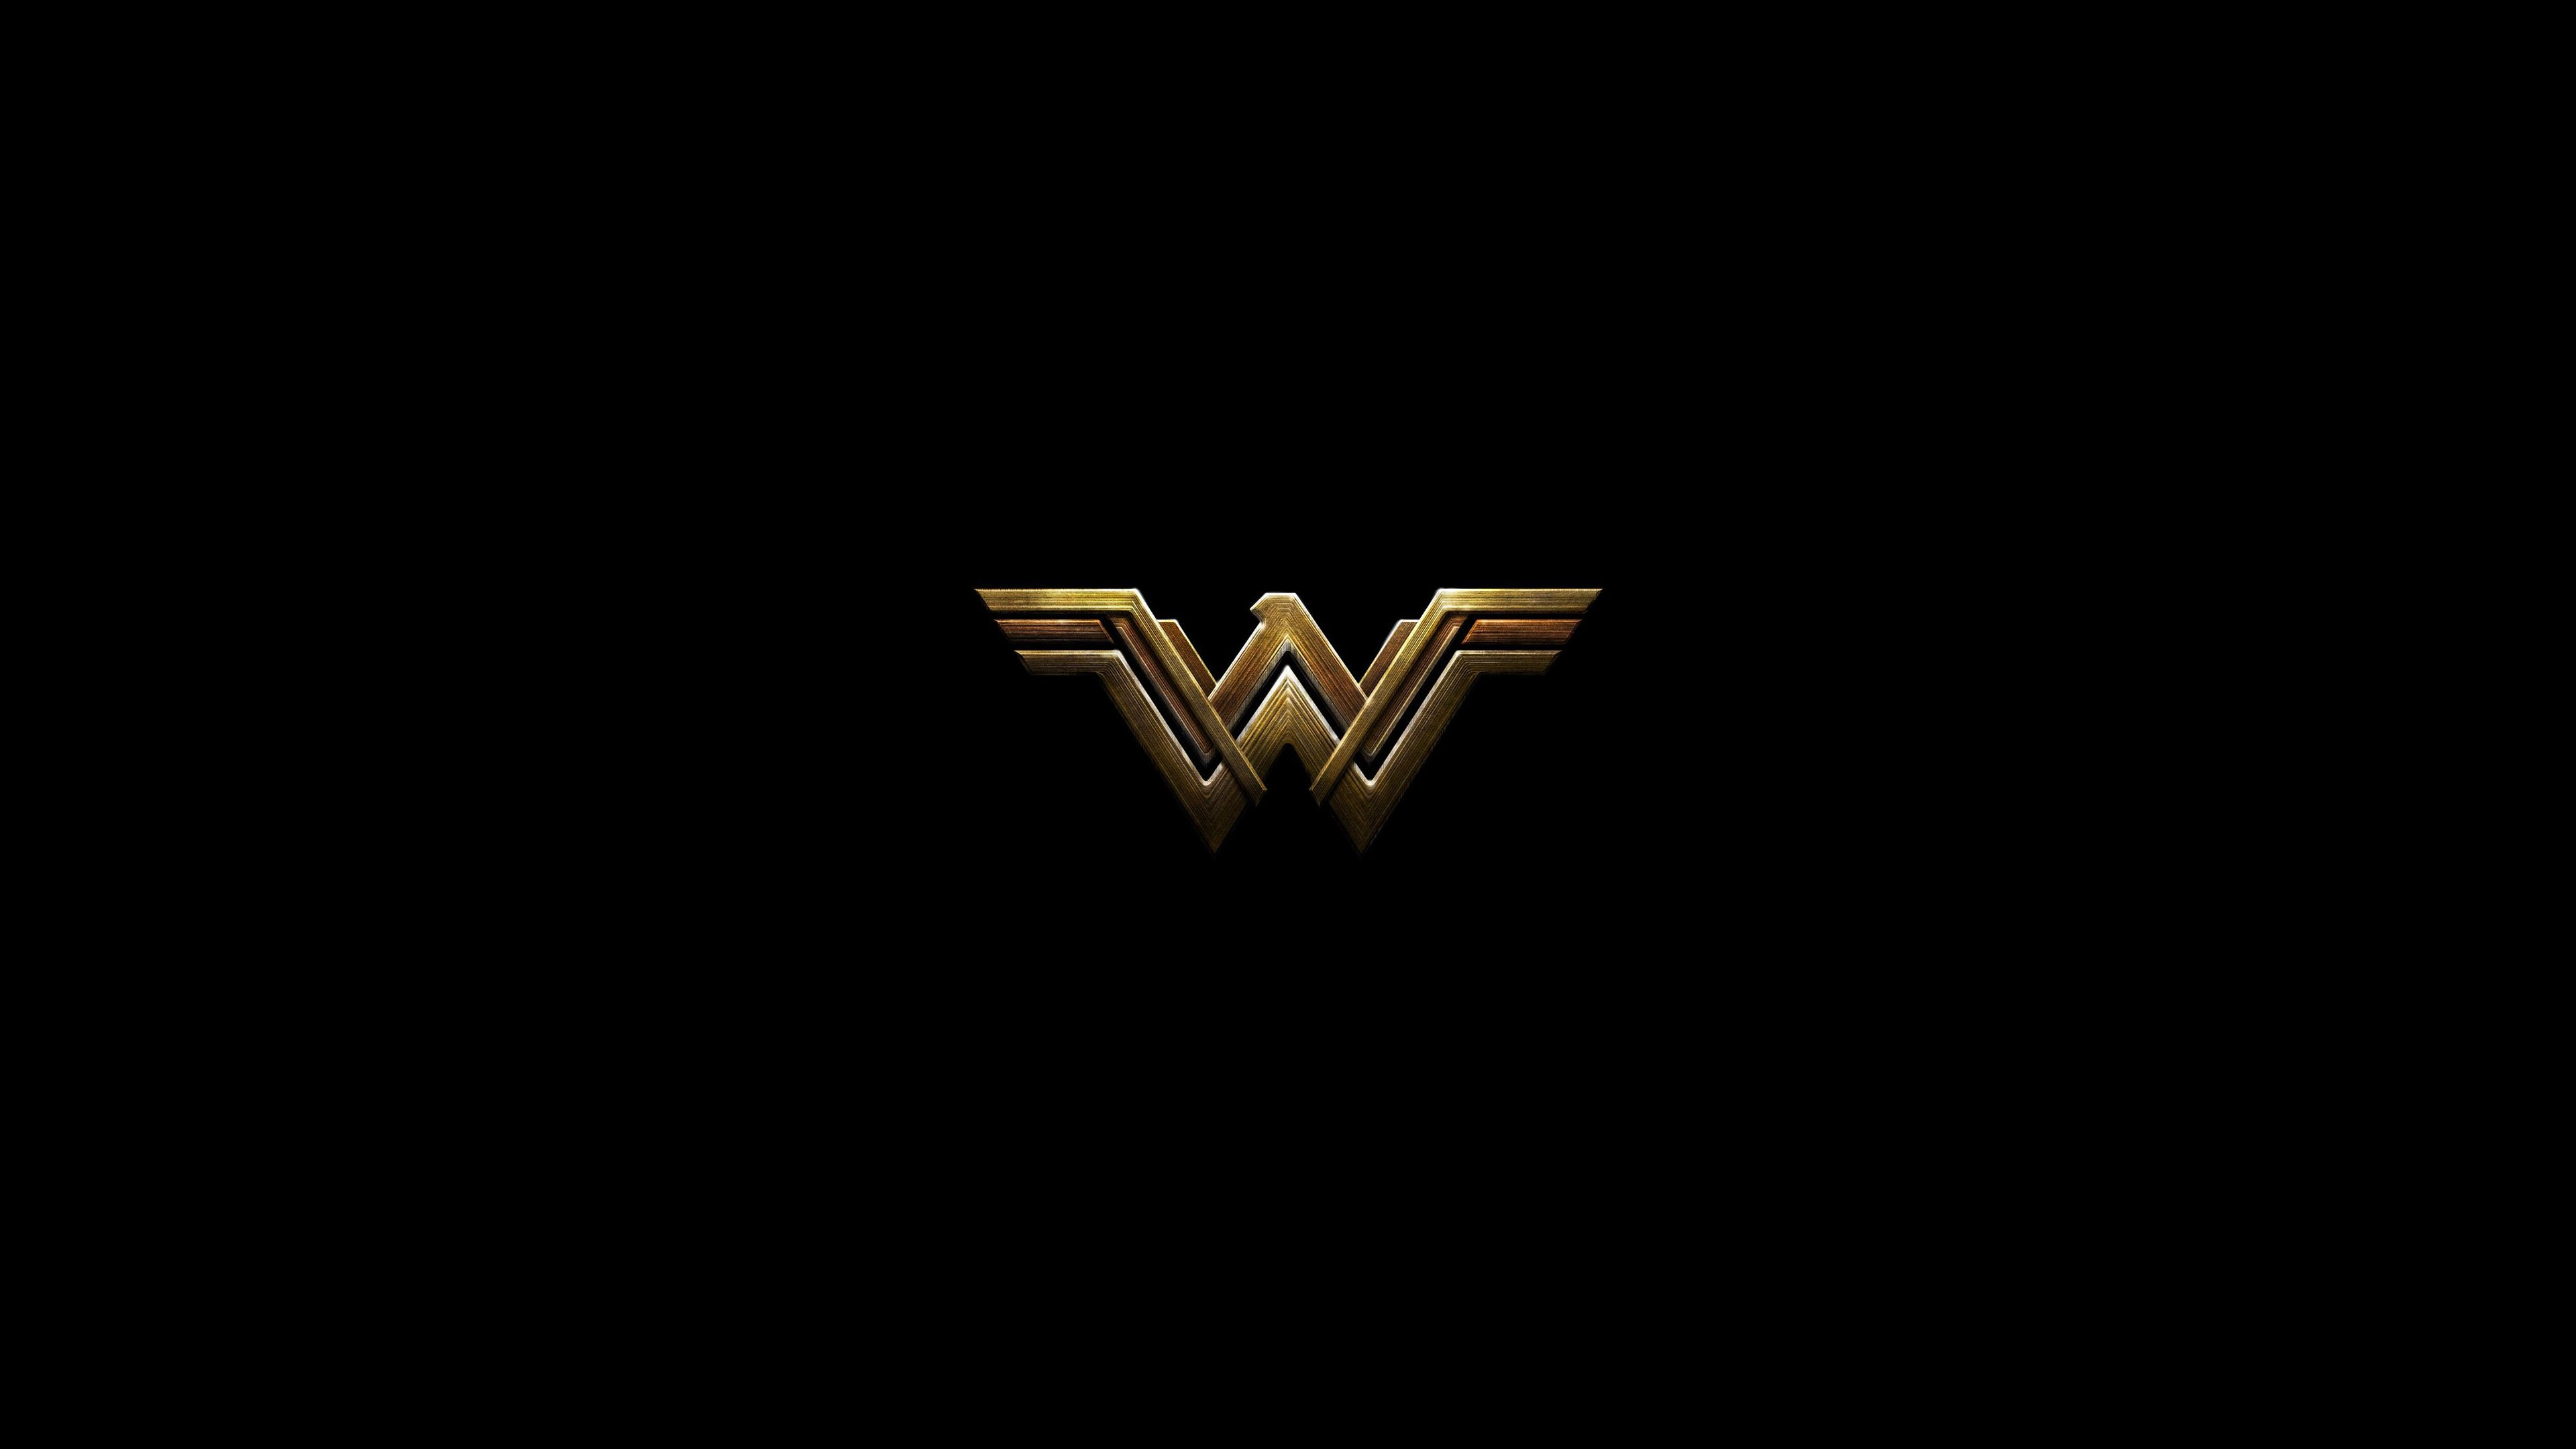 Wonder Woman Dark Logo 4k Wonder Woman Wallpapers Super Heroes Wallpapers Movies Wallpapers Lo Wonder Woman Aesthetic Wonder Woman Drawing Wonder Woman Logo